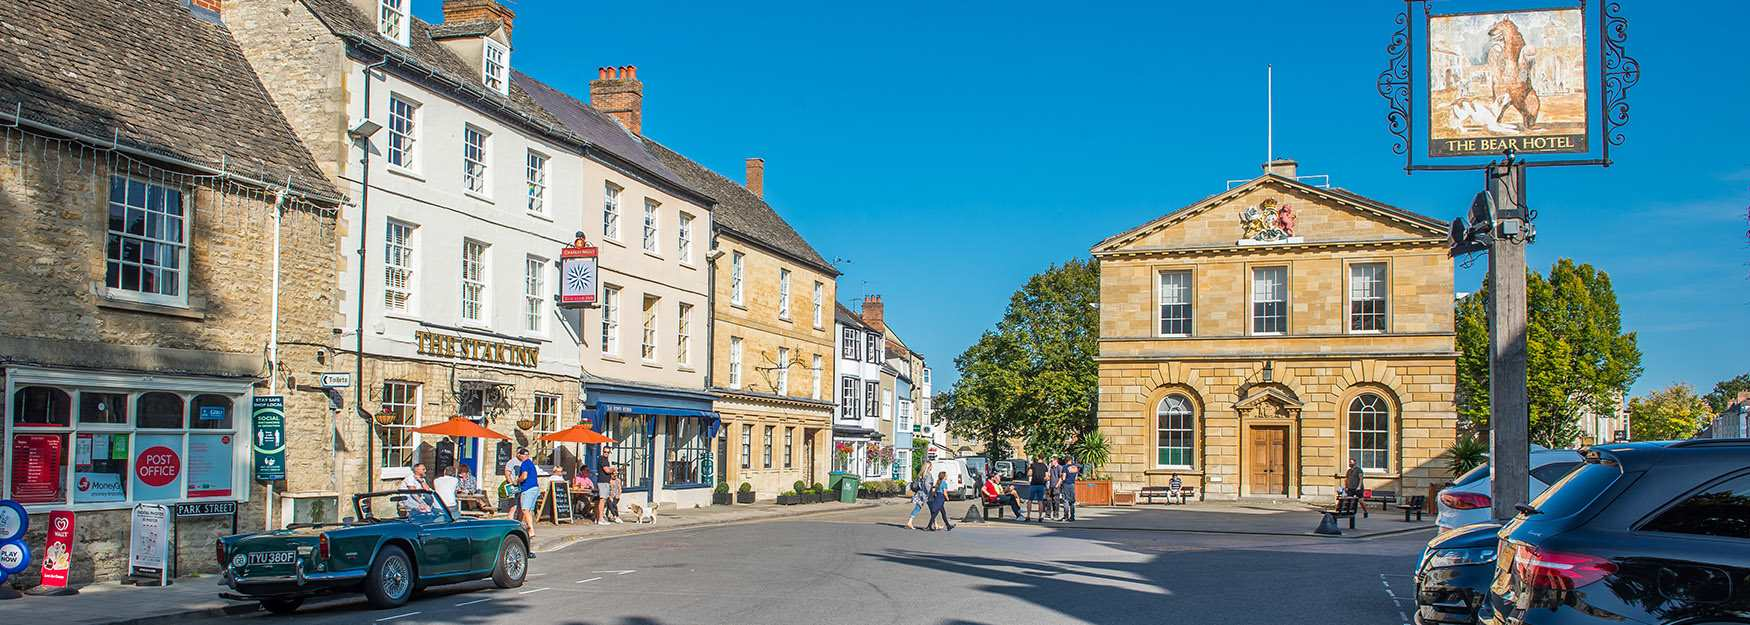 The centre of historic Woodstock (photo by Jay Alice Photographic)